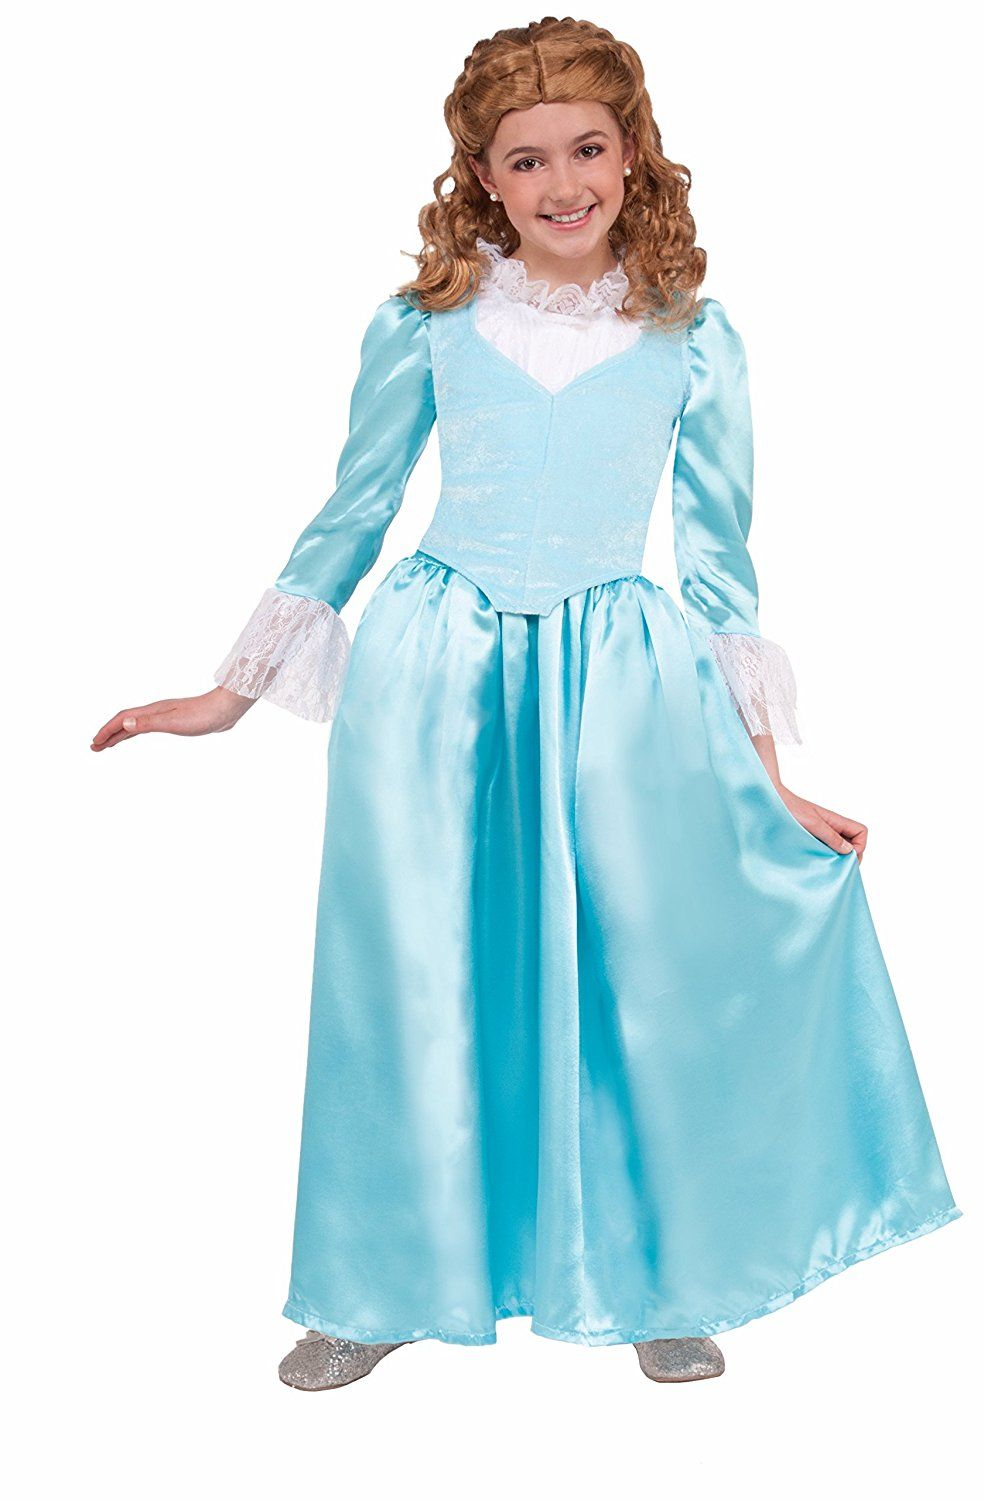 Forum Blue Colonial Lady Child Costume Toys